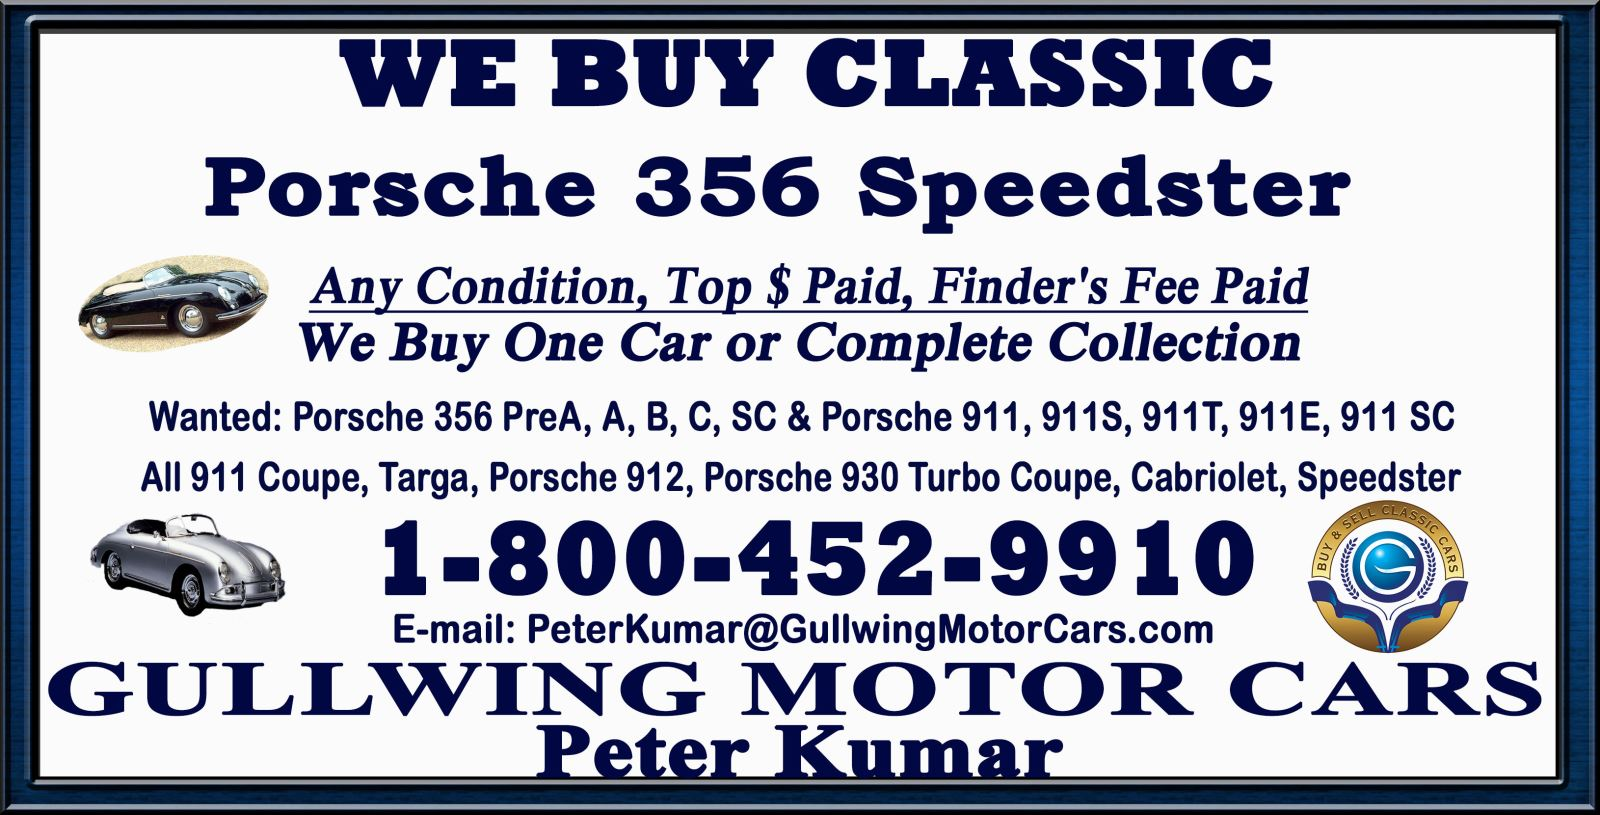 Sell Classic Porsche 356 Speedster | Call Gullwing Motor if Vintage Porsche 356Speedster For Sale